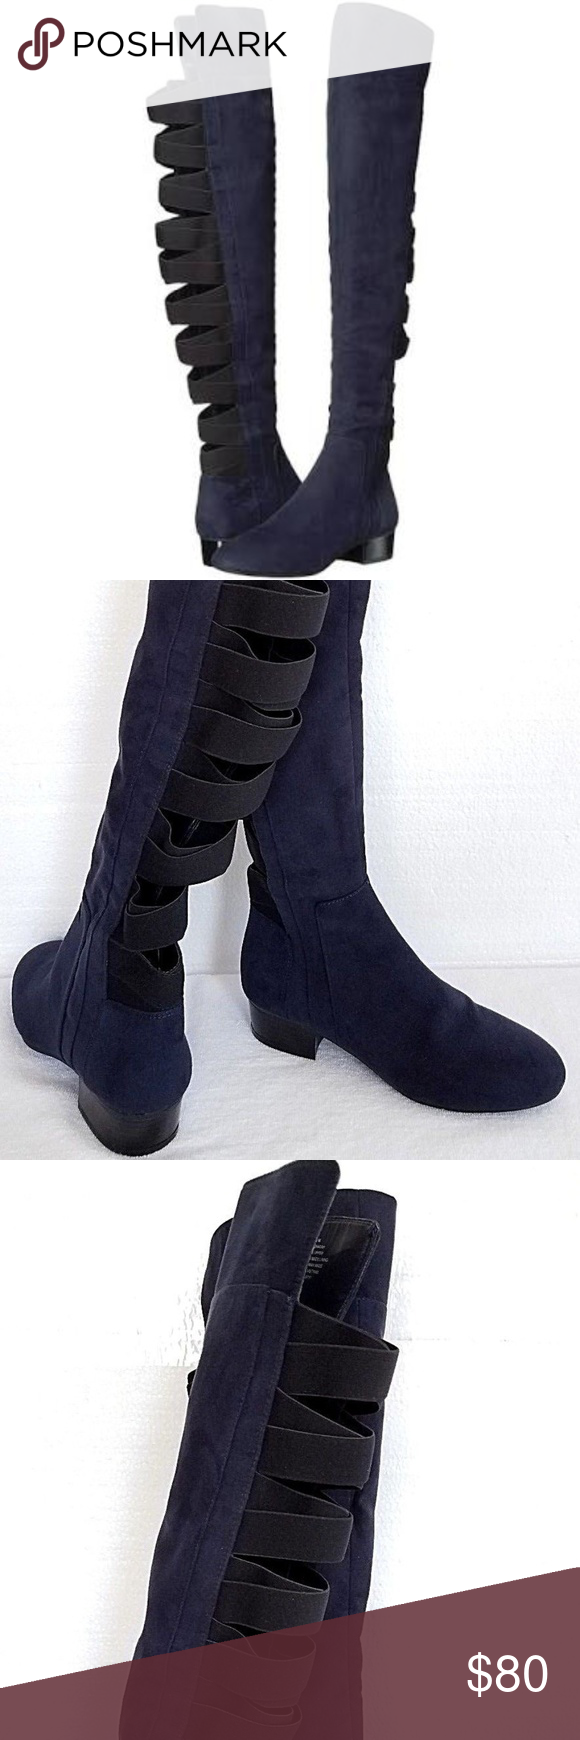 a4079904f36 Nine West Ooohaah Fabric Back Straps Boot 5.5M NEW Nine West Women s Over  The Knee